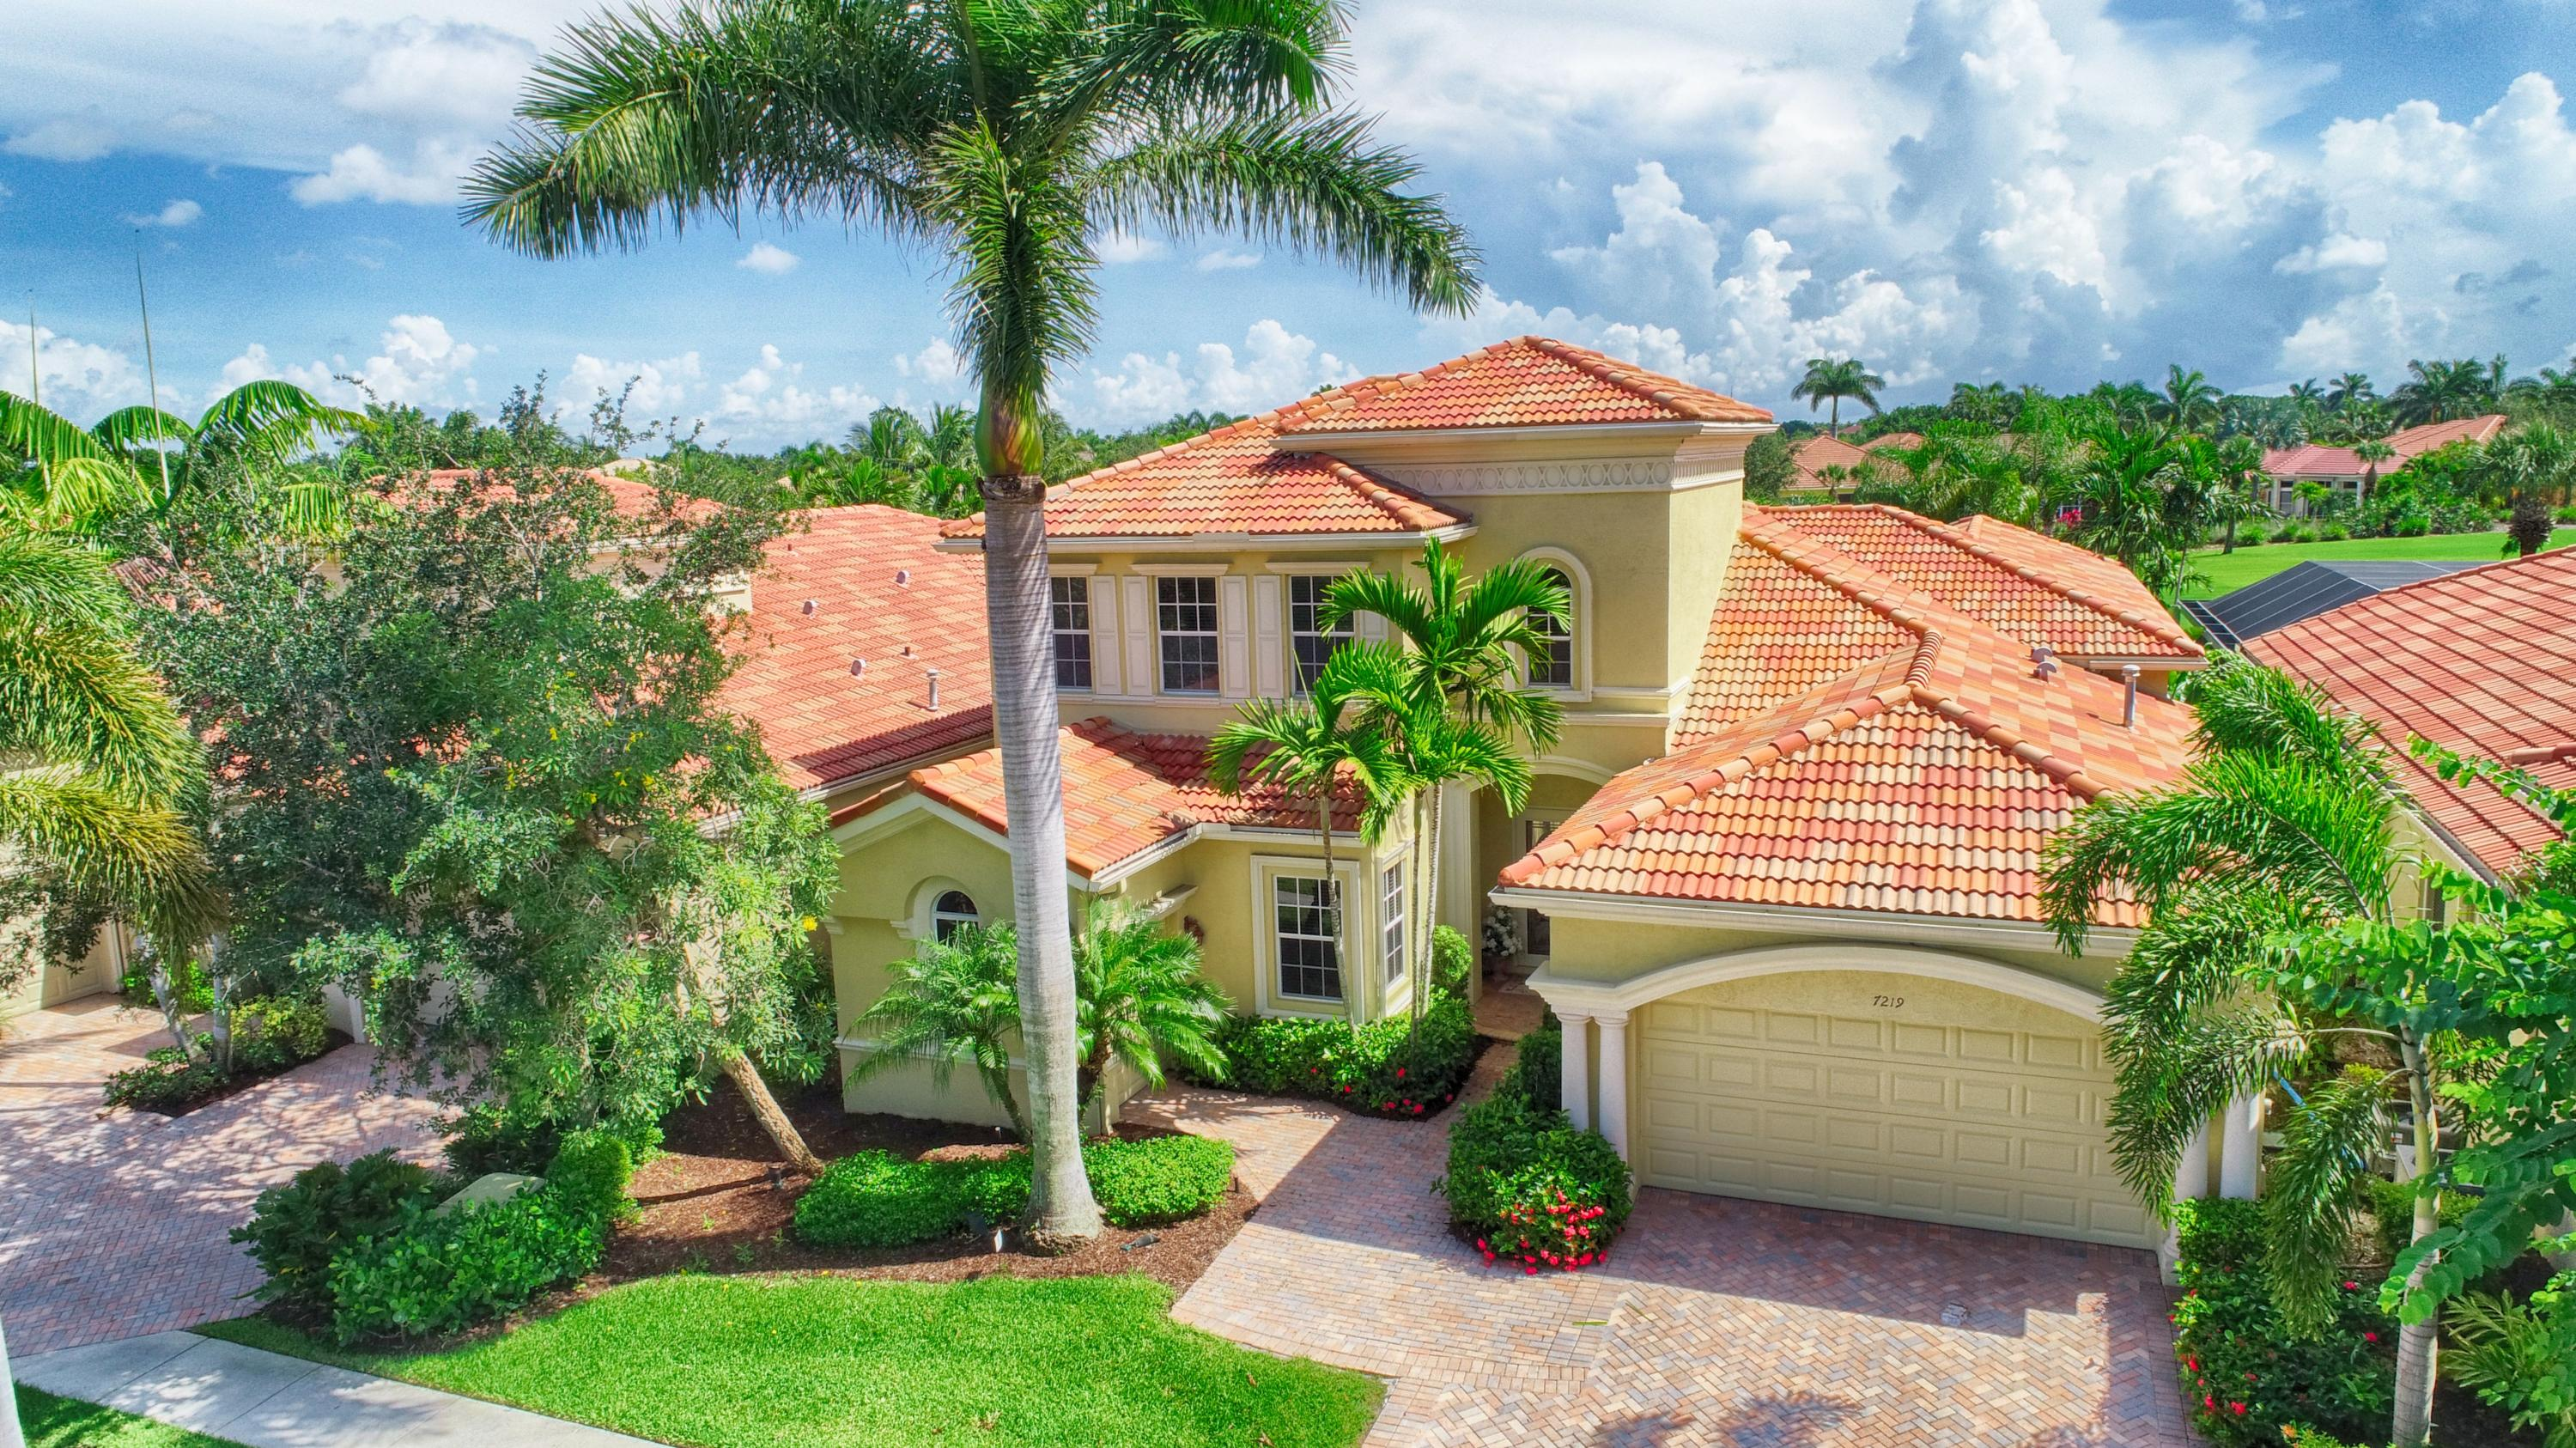 7219 Tradition Cove Lane, West Palm Beach, Florida 33412, 4 Bedrooms Bedrooms, ,4.1 BathroomsBathrooms,A,Single family,Tradition Cove,RX-10444495